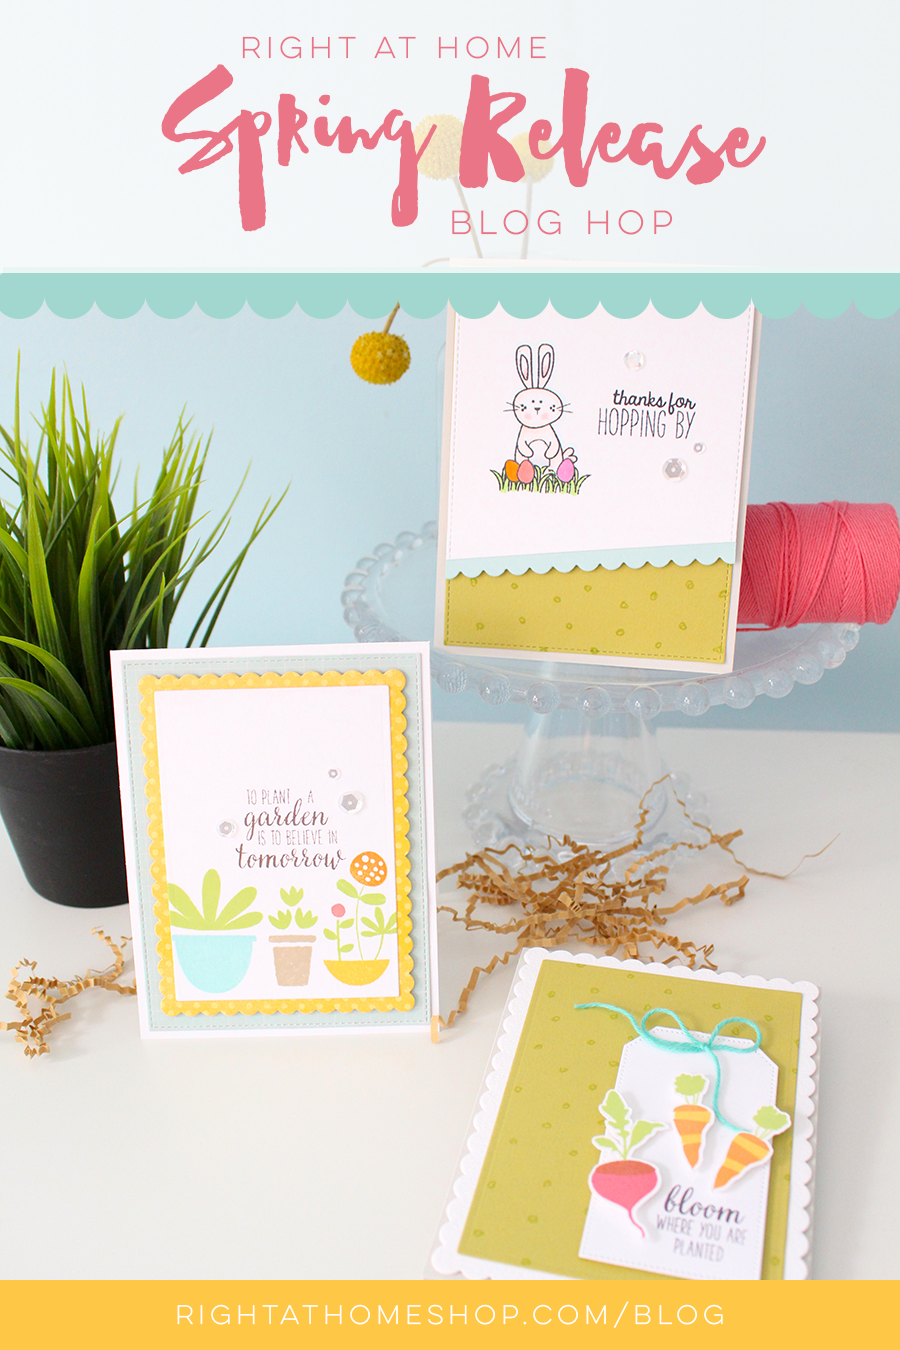 Right at Home Spring Release Blog Hop - New stamps + embellishments are now available on Right at Home Shop